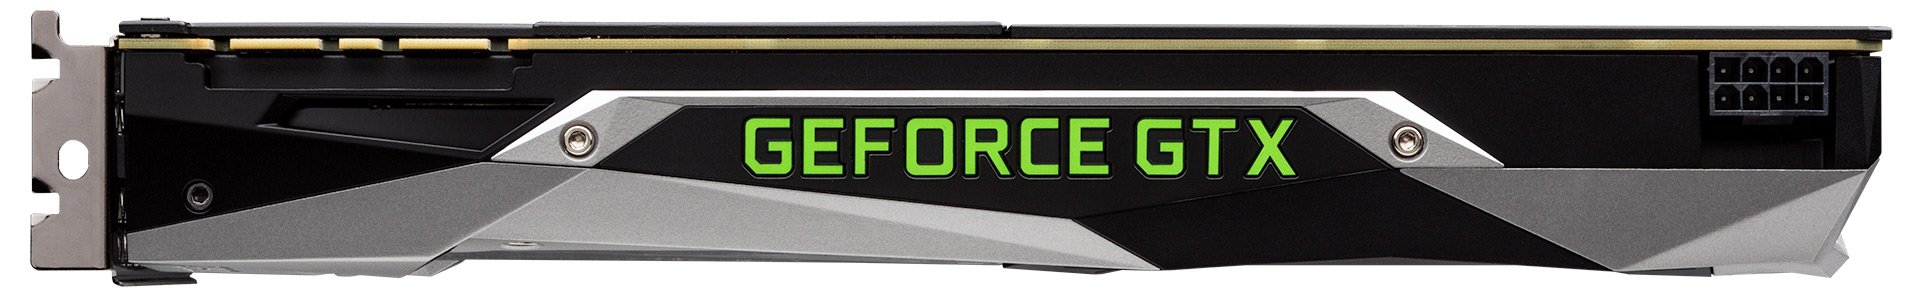 big_geforce_gtx_1080-badge.jpg